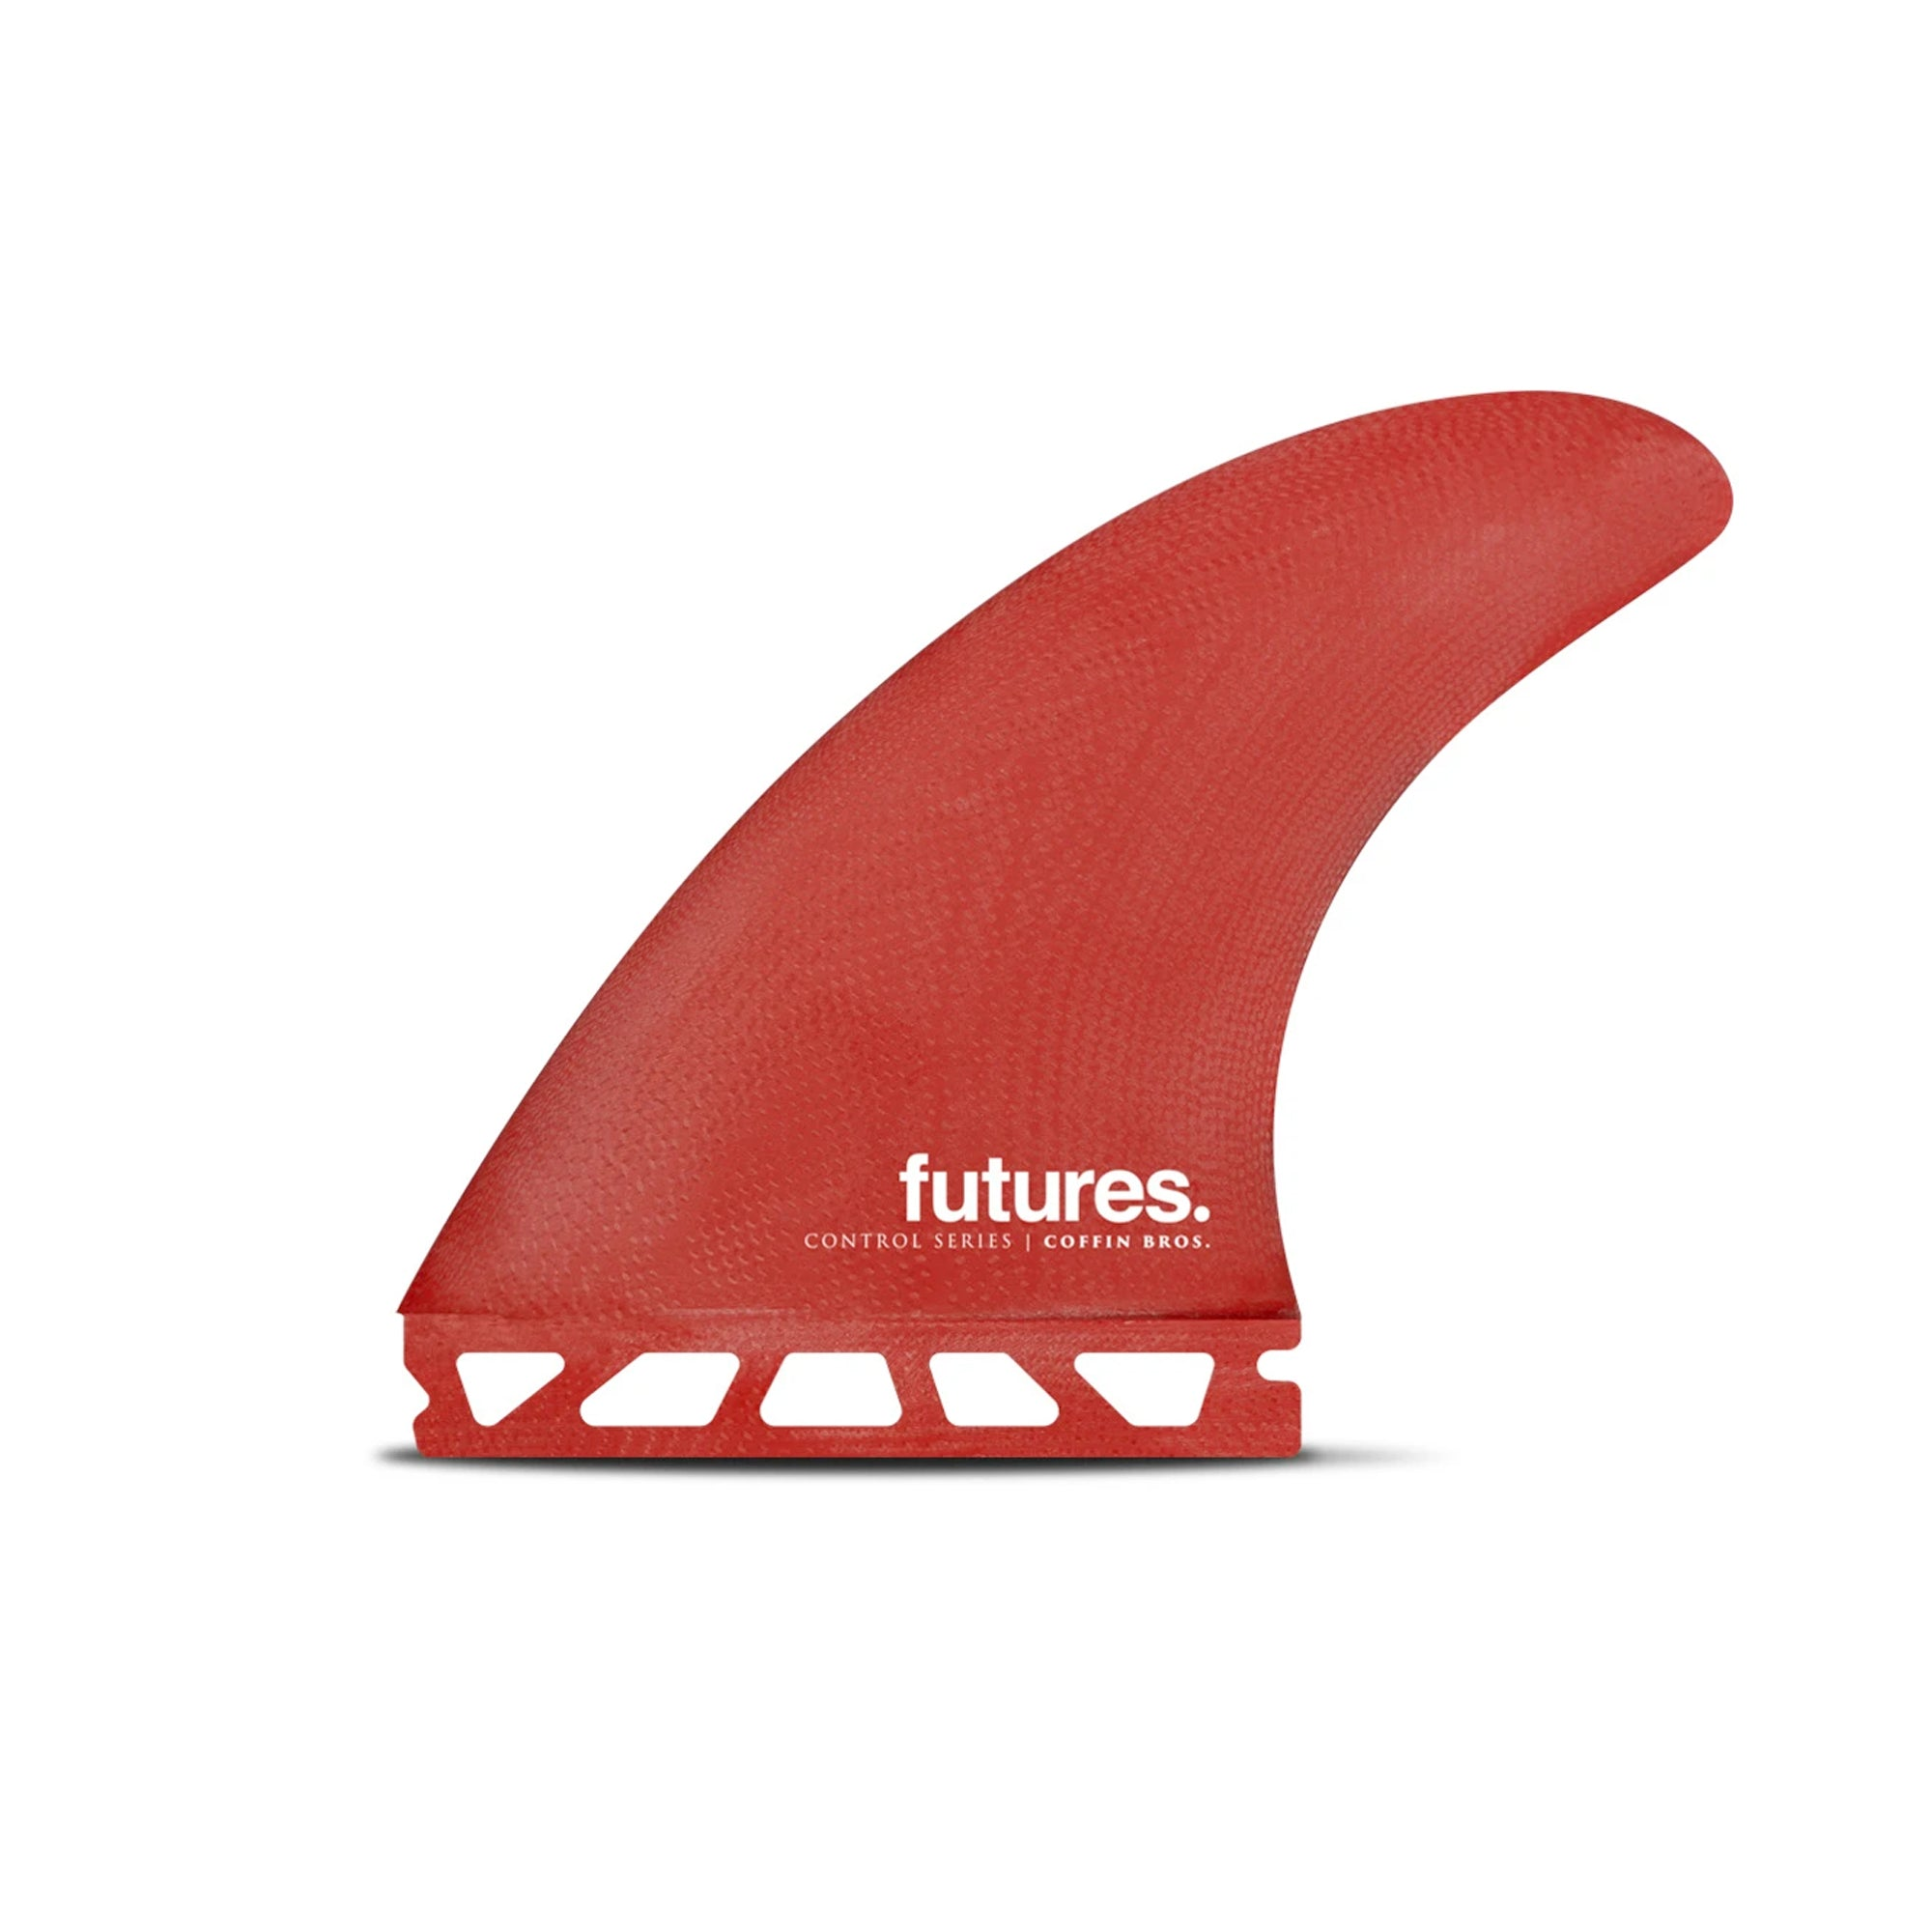 Futures Coffin Bros Fiberglass Thruster Fin Set